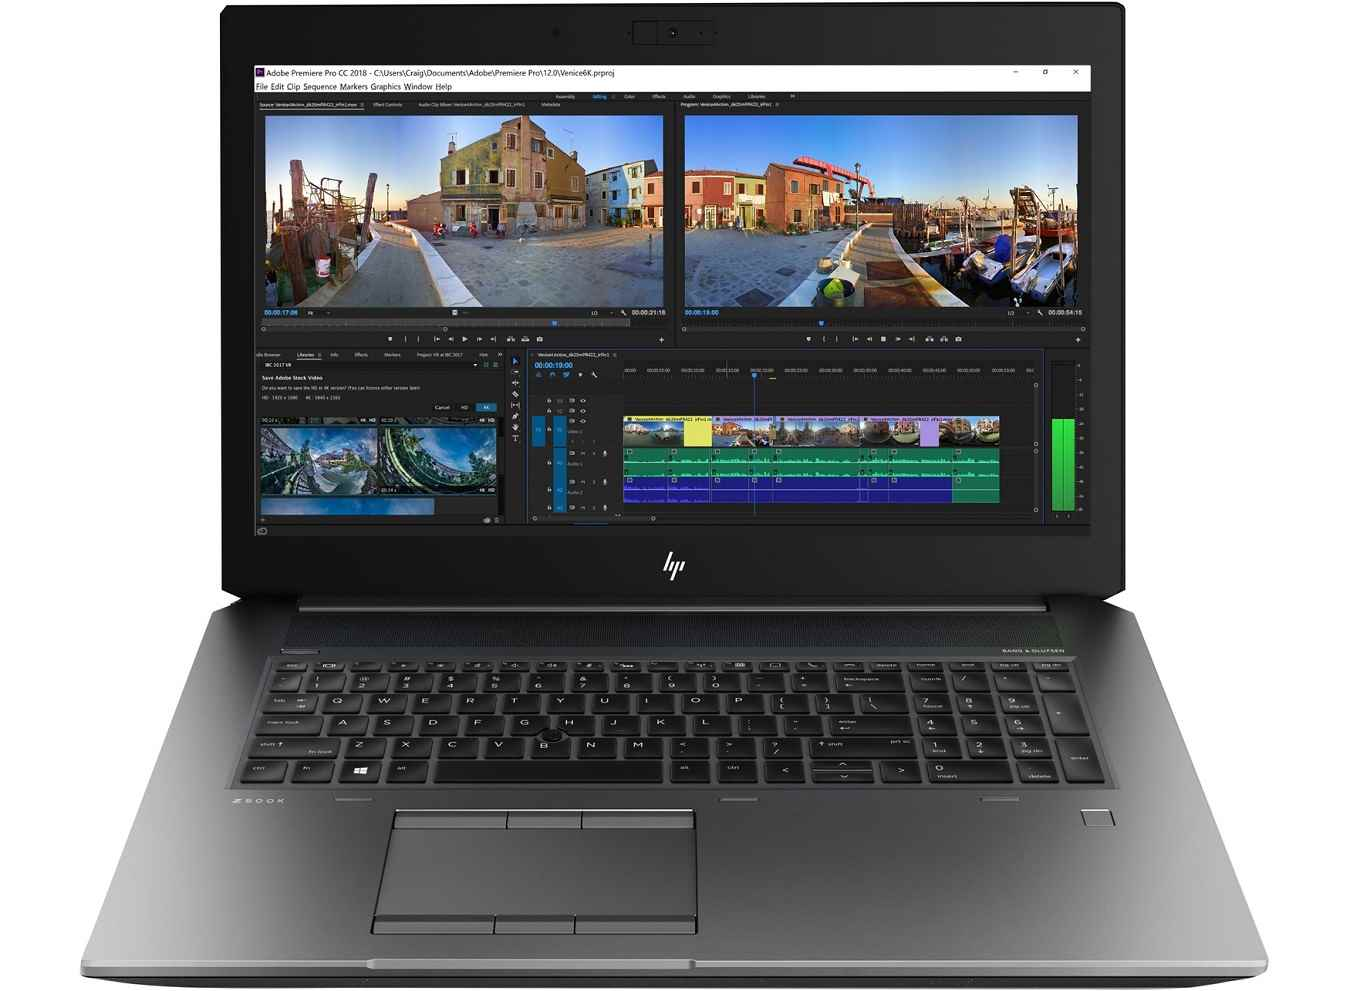 لپ تاپ استوک اچ پی مدل HP ZBOOK 15 G5 با مشخصات CPU Xeon-2186M-32GB or 64GB-500GB-SSD-1TB-HDD-4GB-nvidia-quadro-p2000